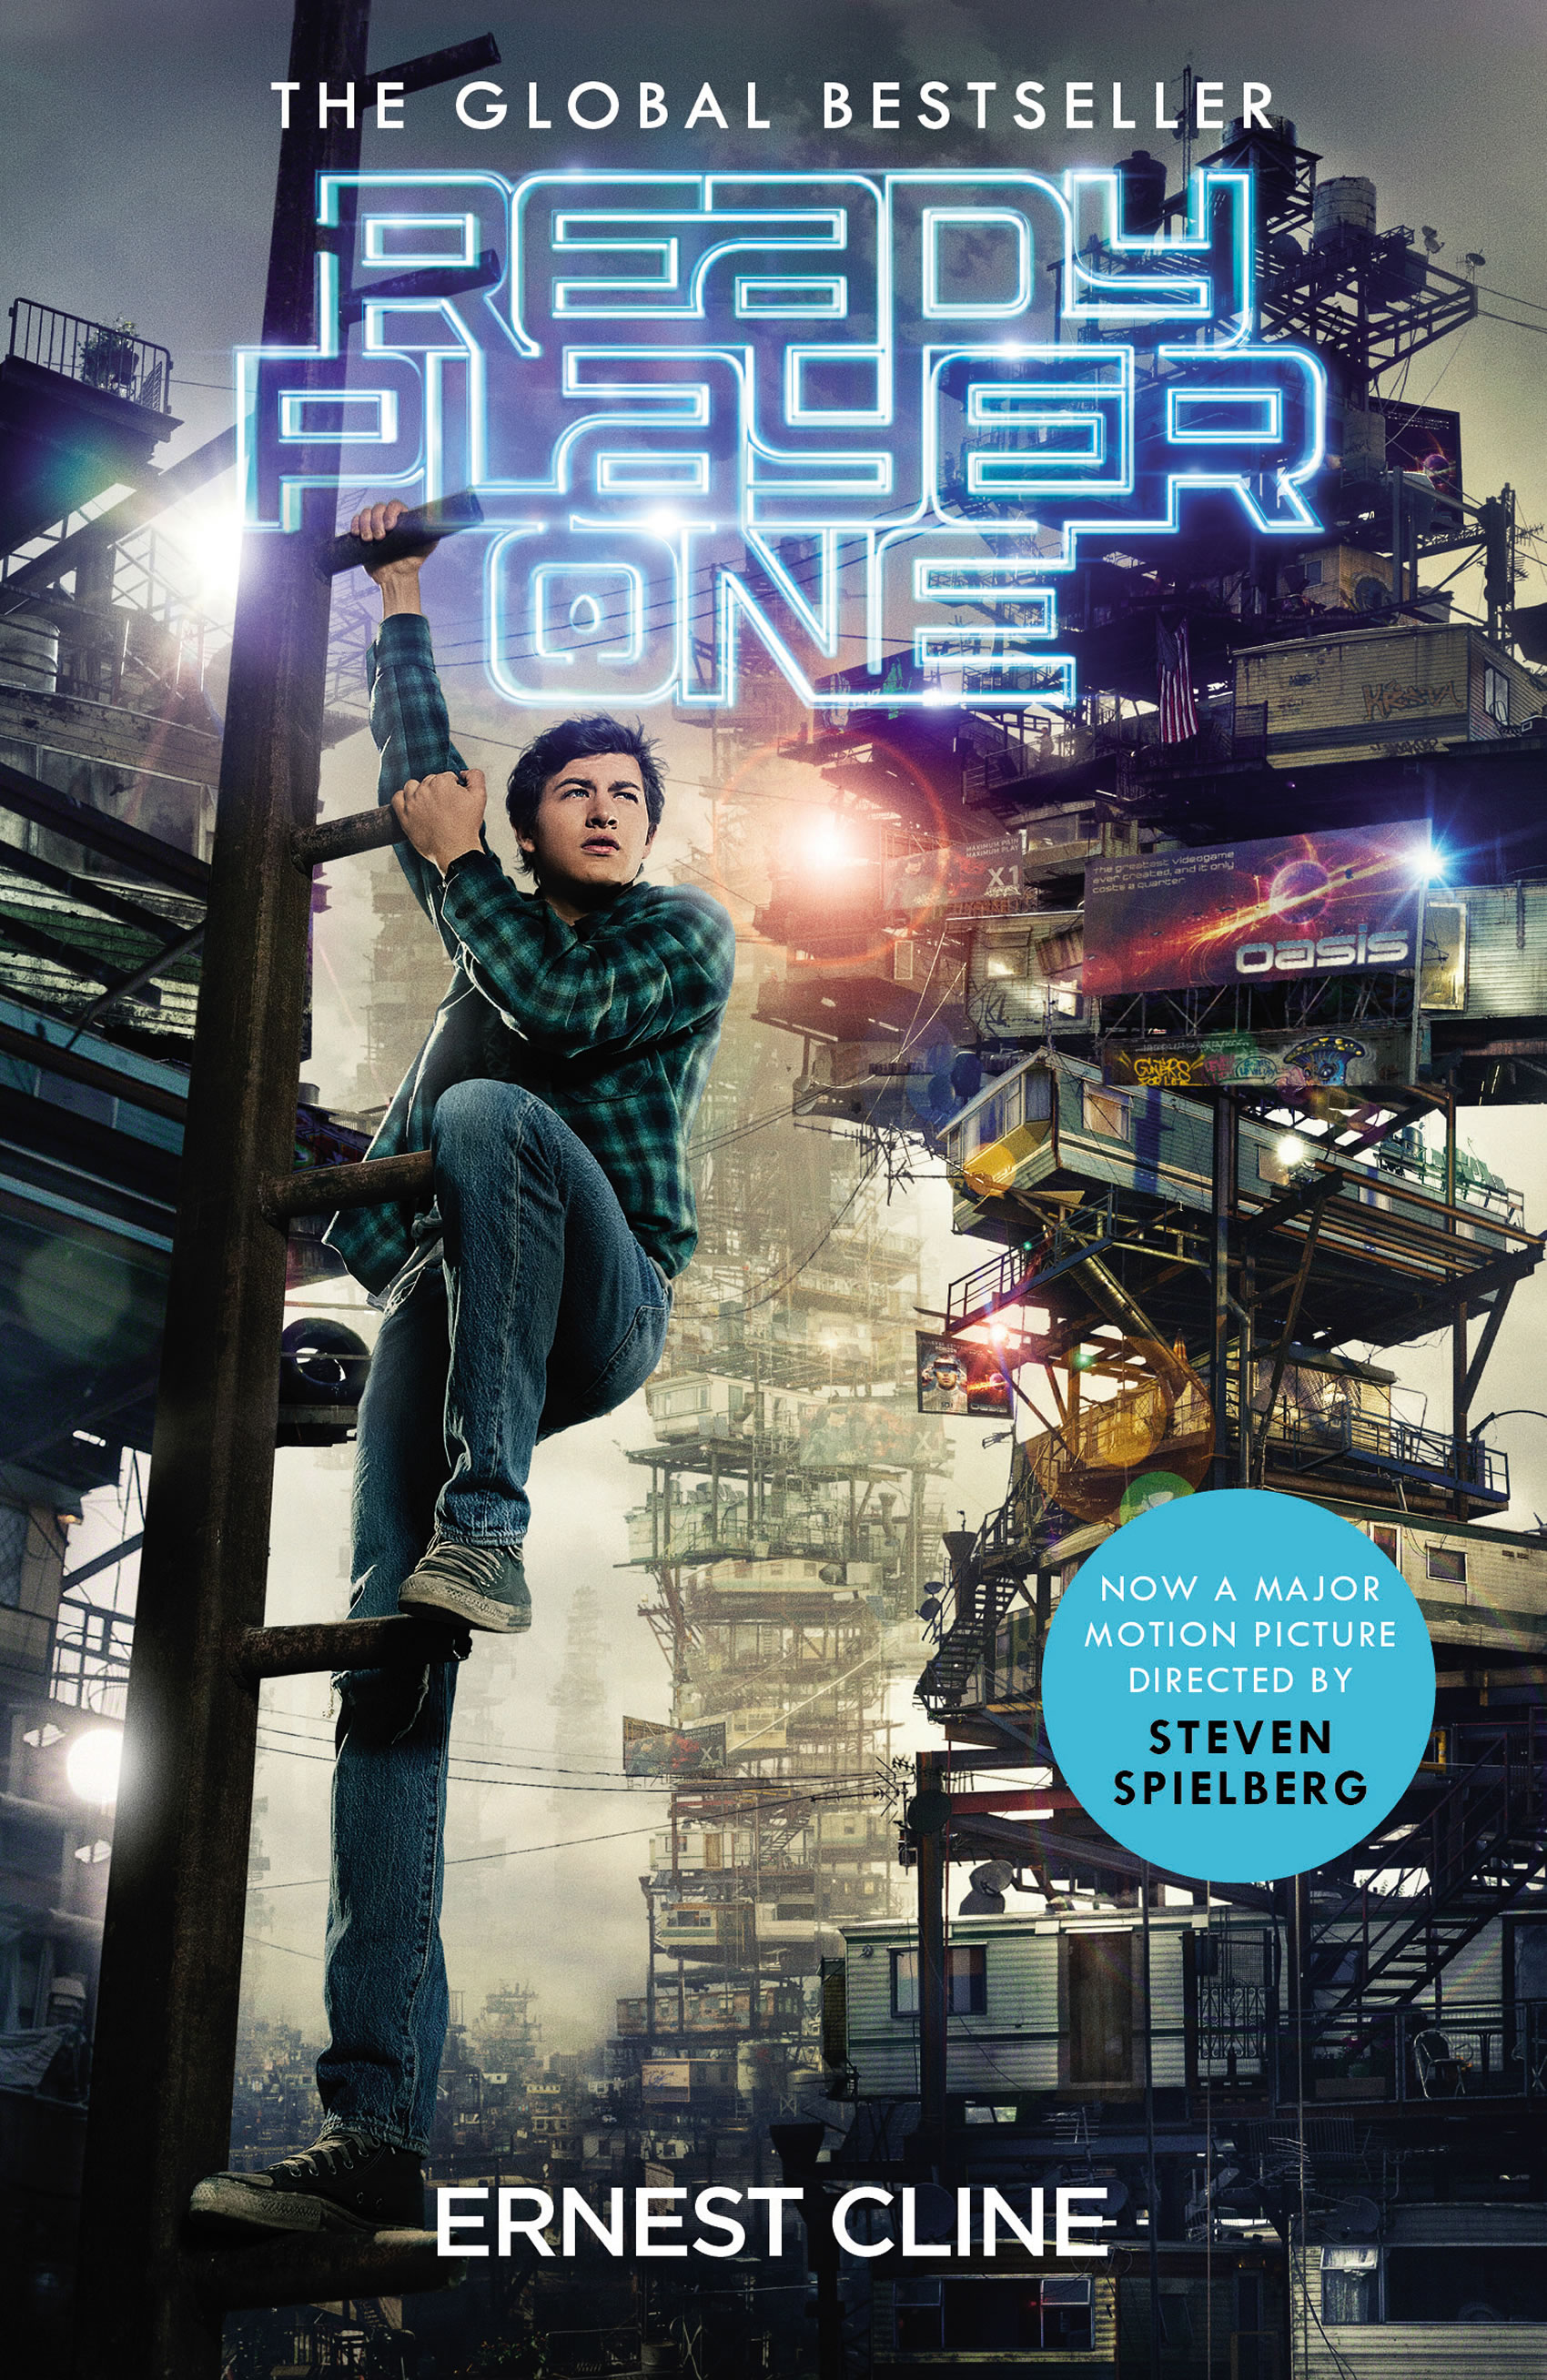 Ready Player One by Ernst Cline - Image supplied by Penguin Random House